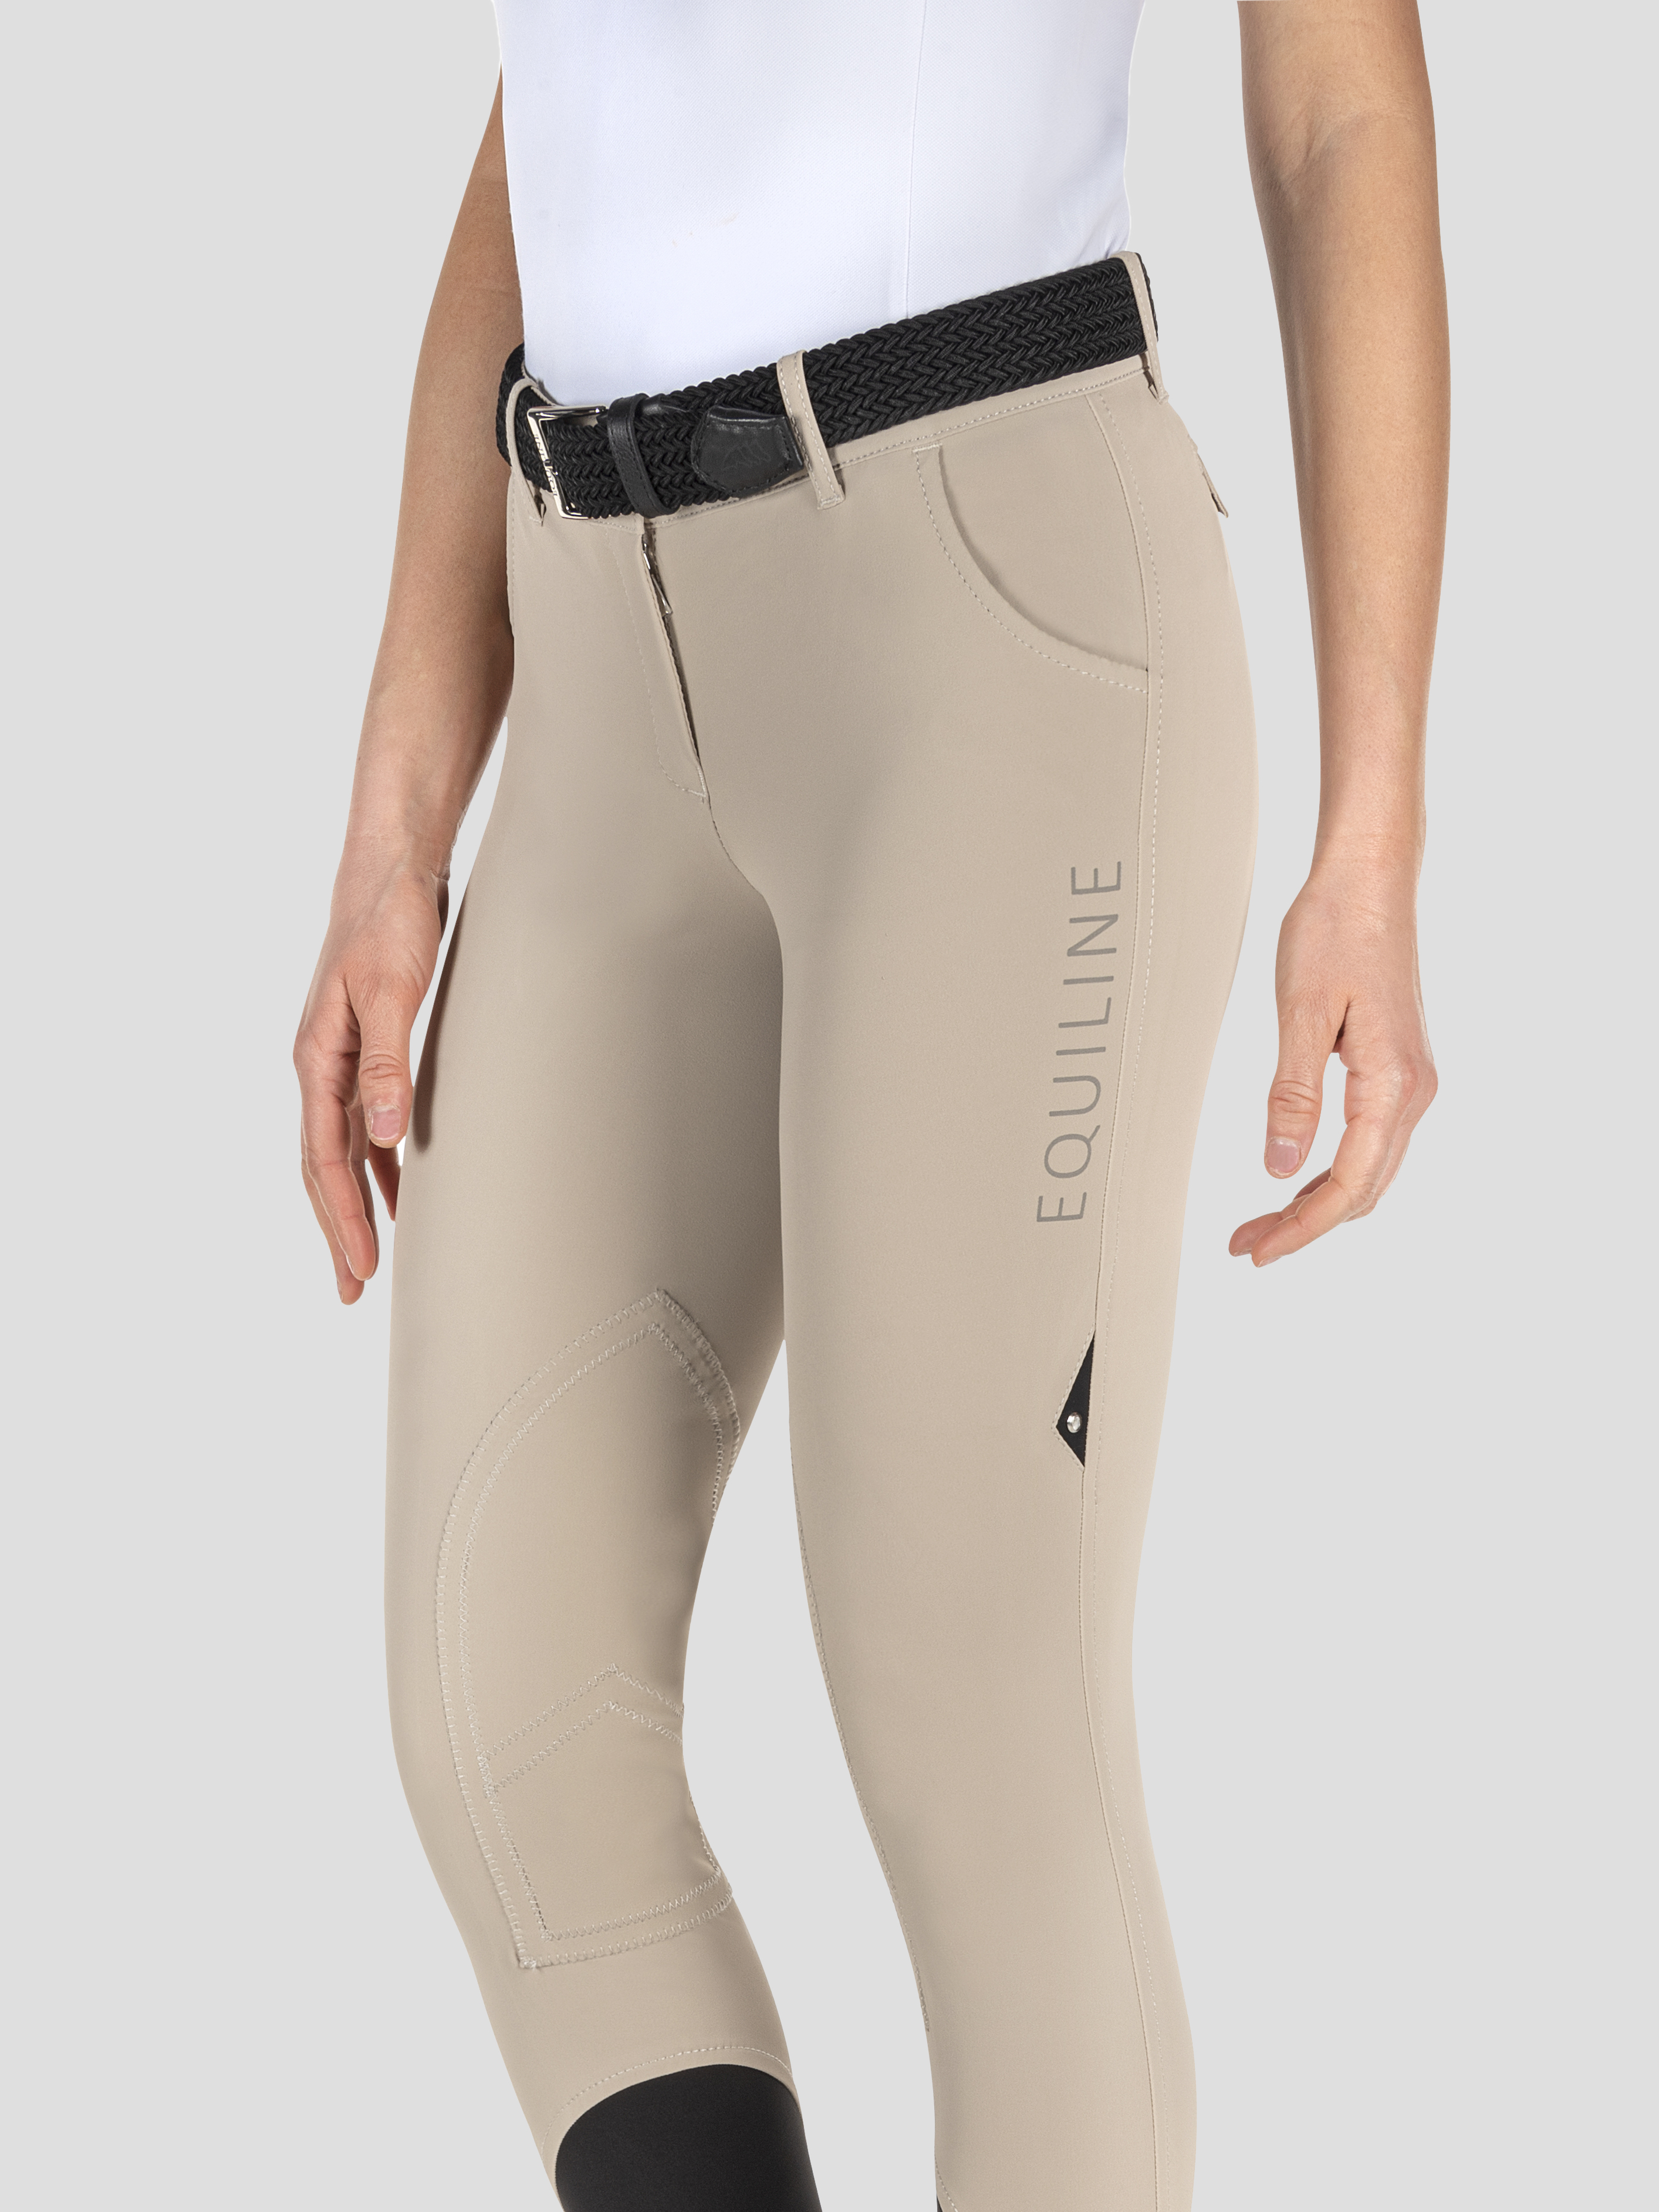 CALAMITY WOMEN'S KNEE PATCH BREECHES IN LEIGHT WEIGHT IN B-MOVE 2